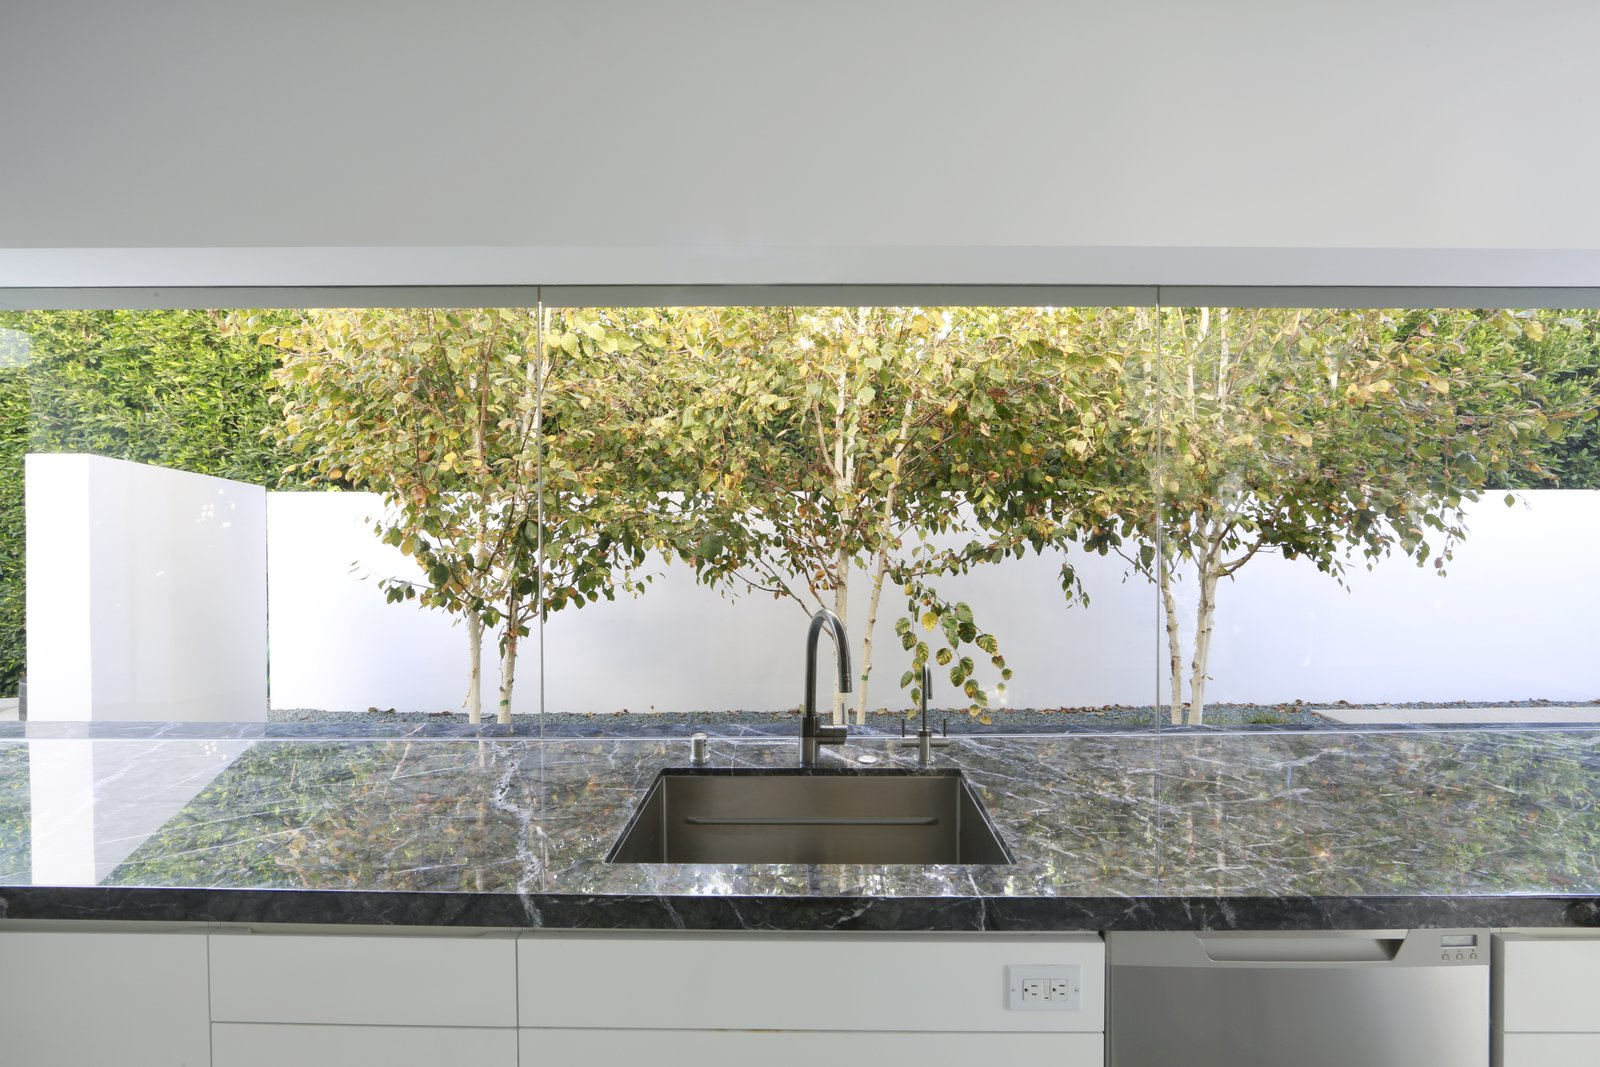 Kitchen White birches play off the white walls in a narrow courtyard just beyond the kitchen.  A New Stage